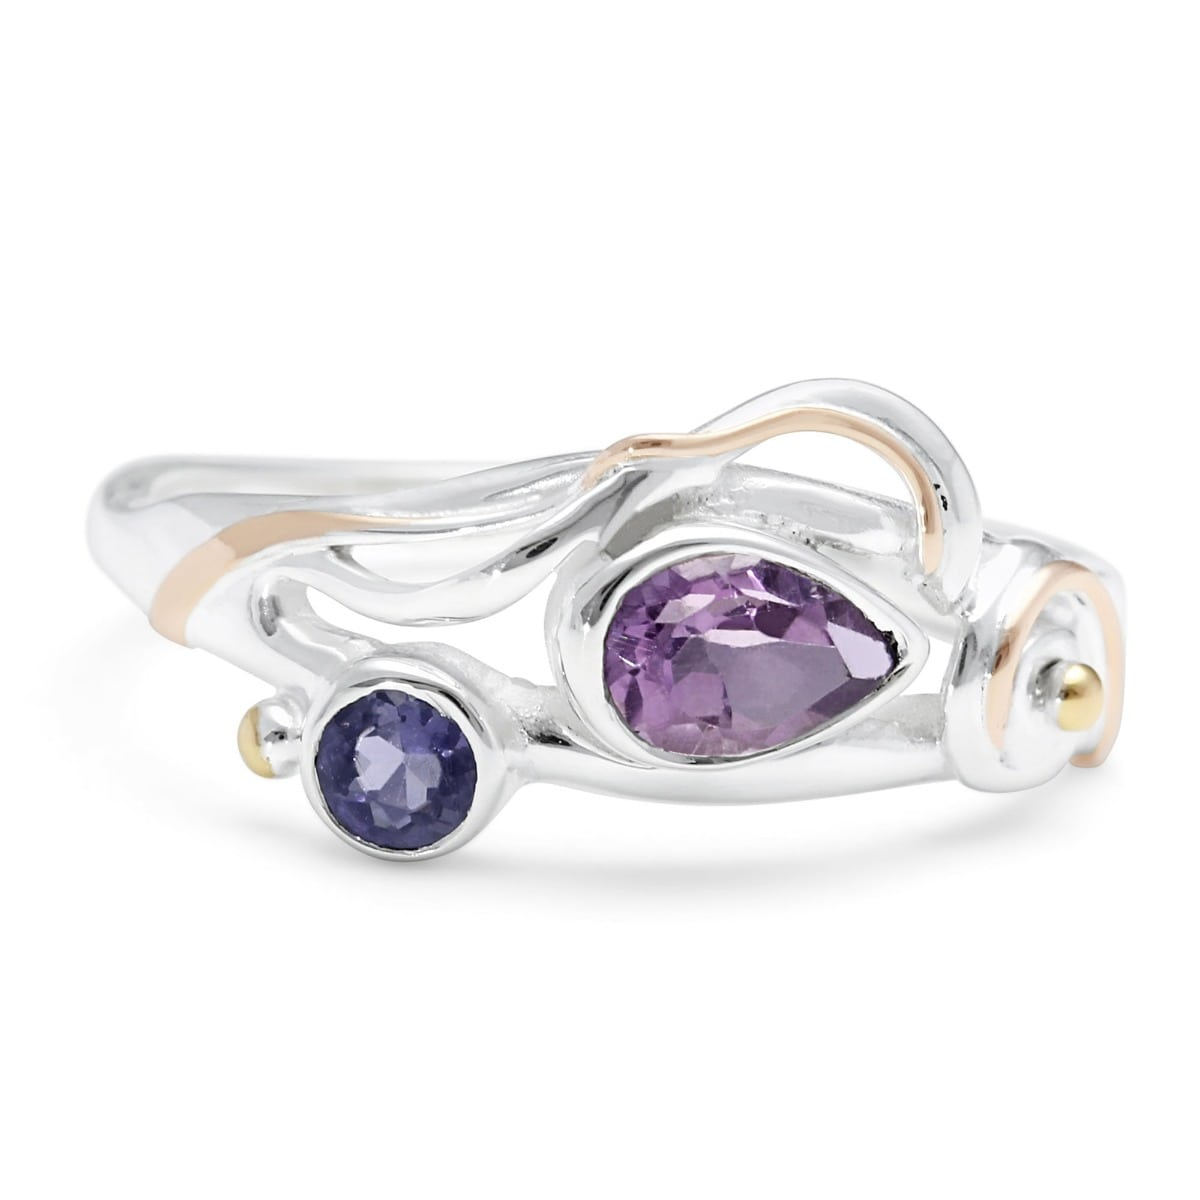 Sterling Silver Ring With Faceted Teardrop Amethyst & Lolite